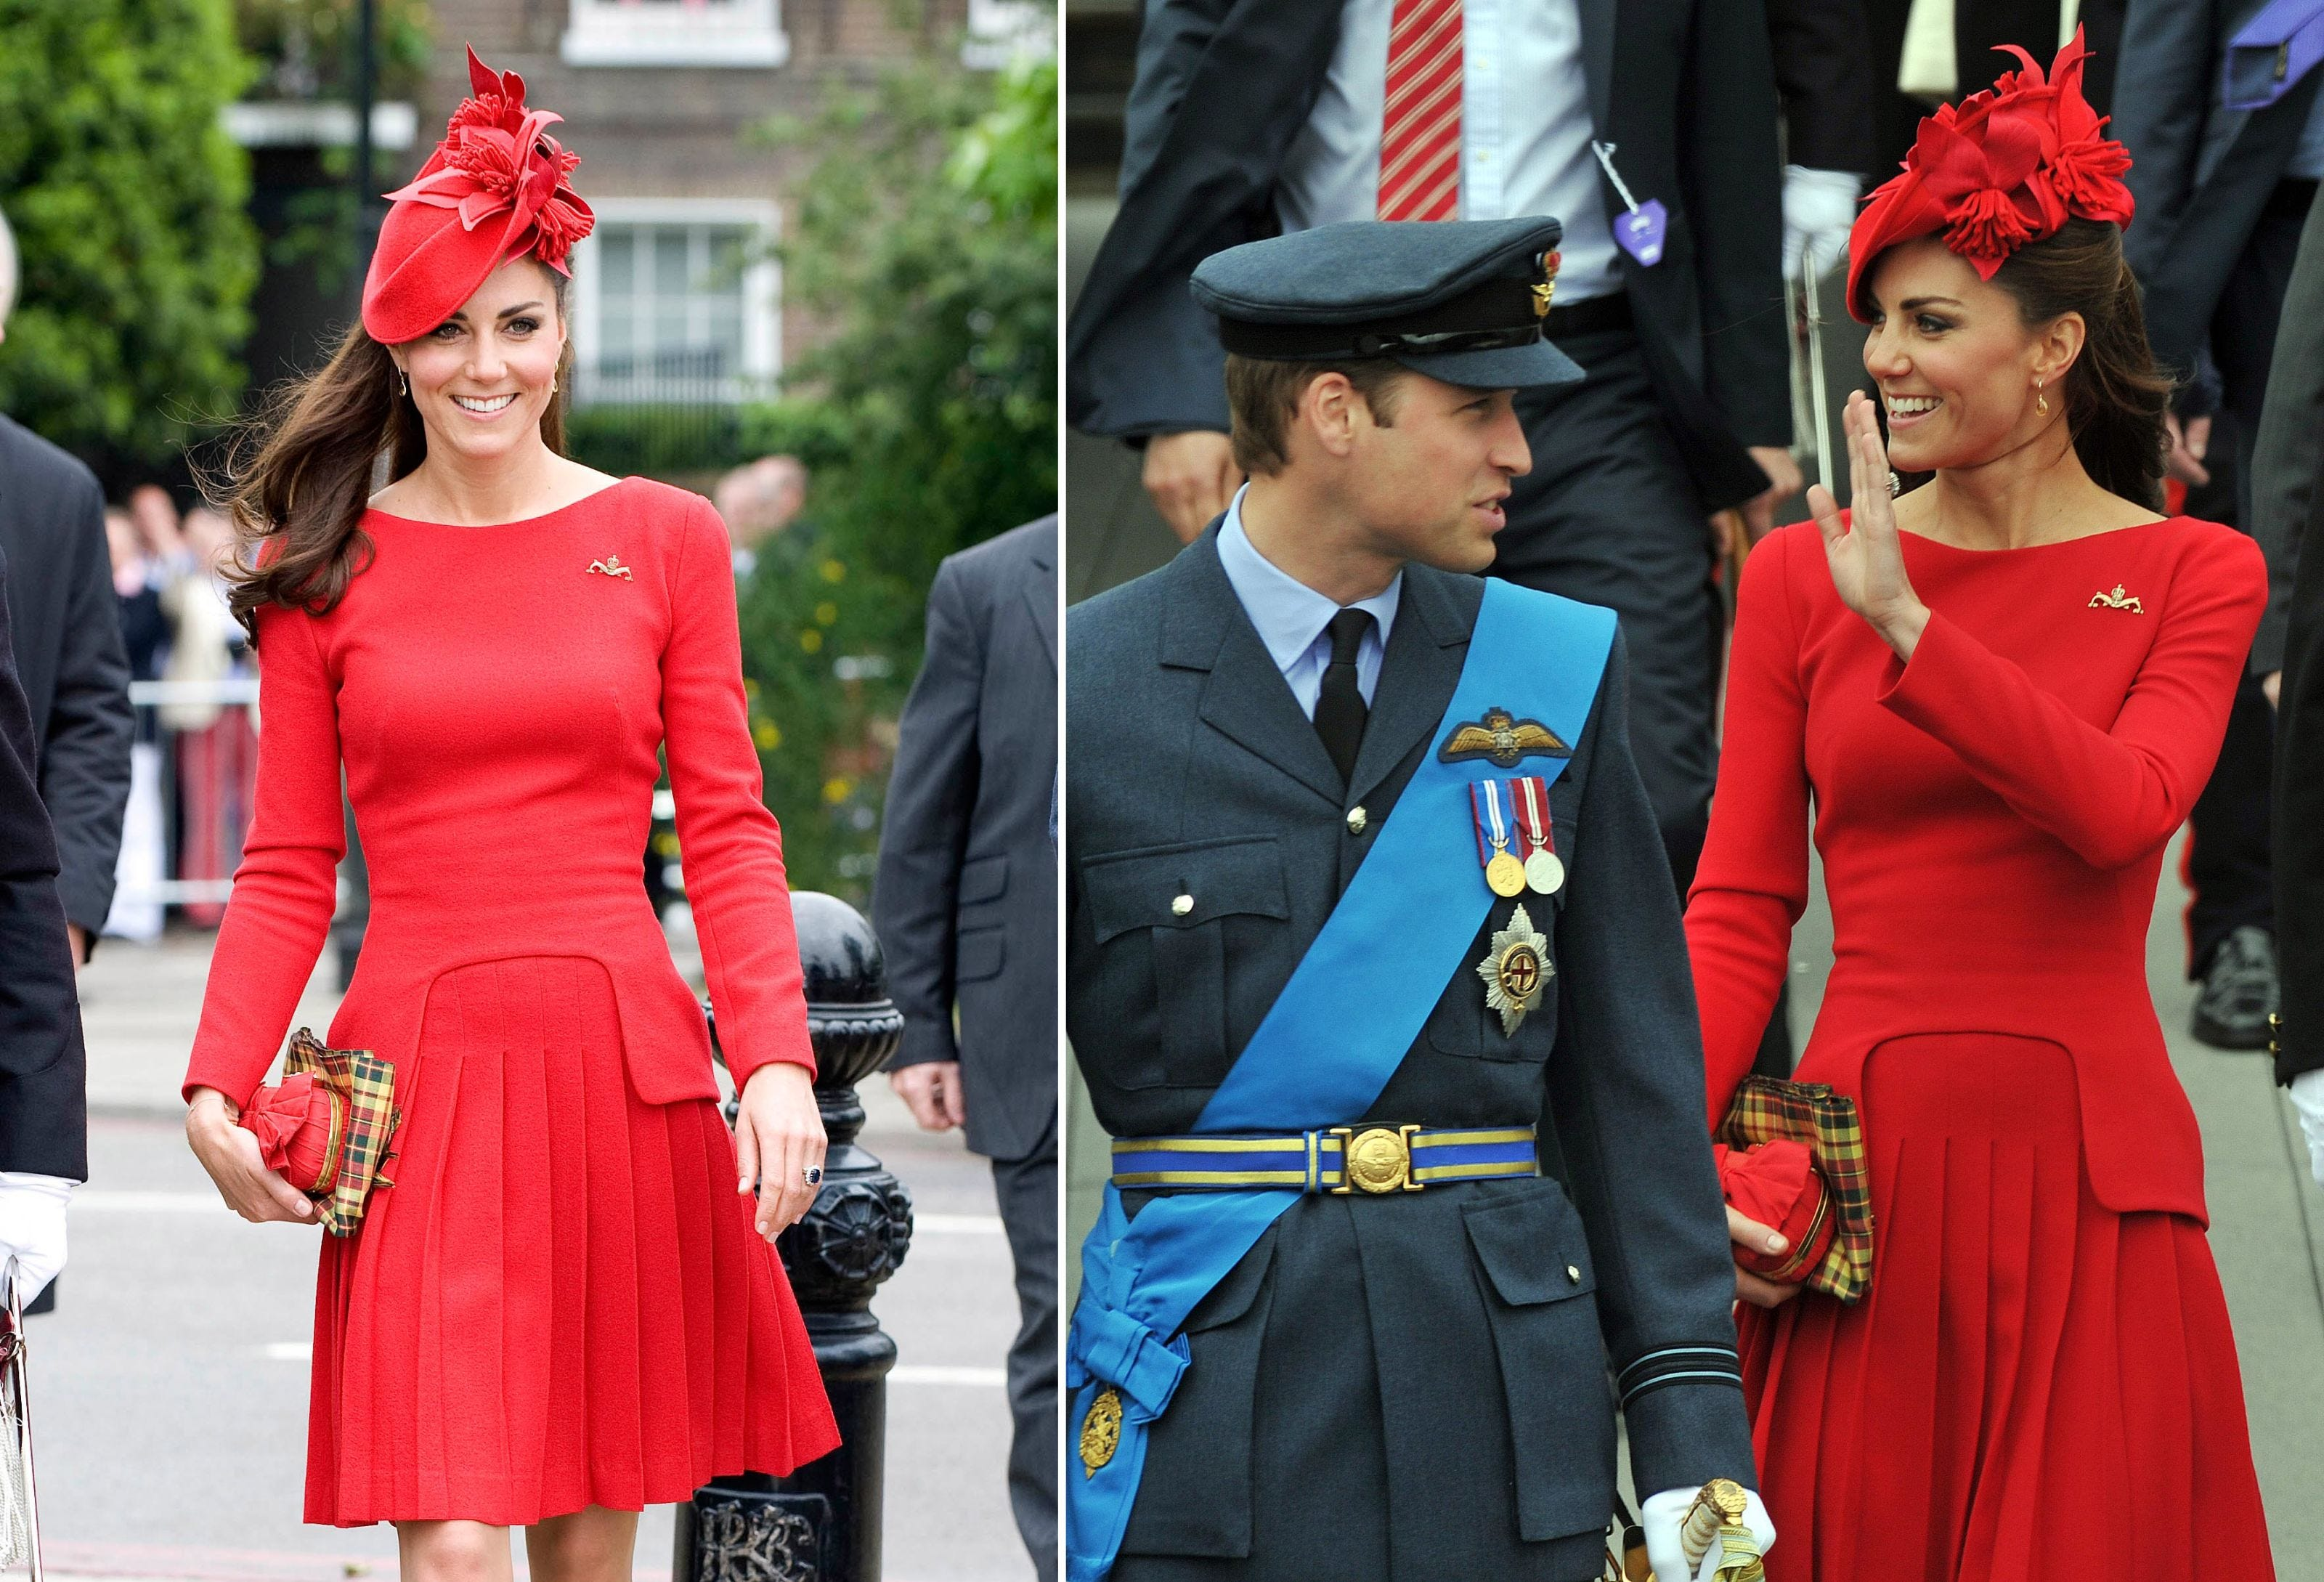 Red, Outerwear, Flag, Fashion accessory, Coat, Style, Dress, Hat, Headgear, Cap,